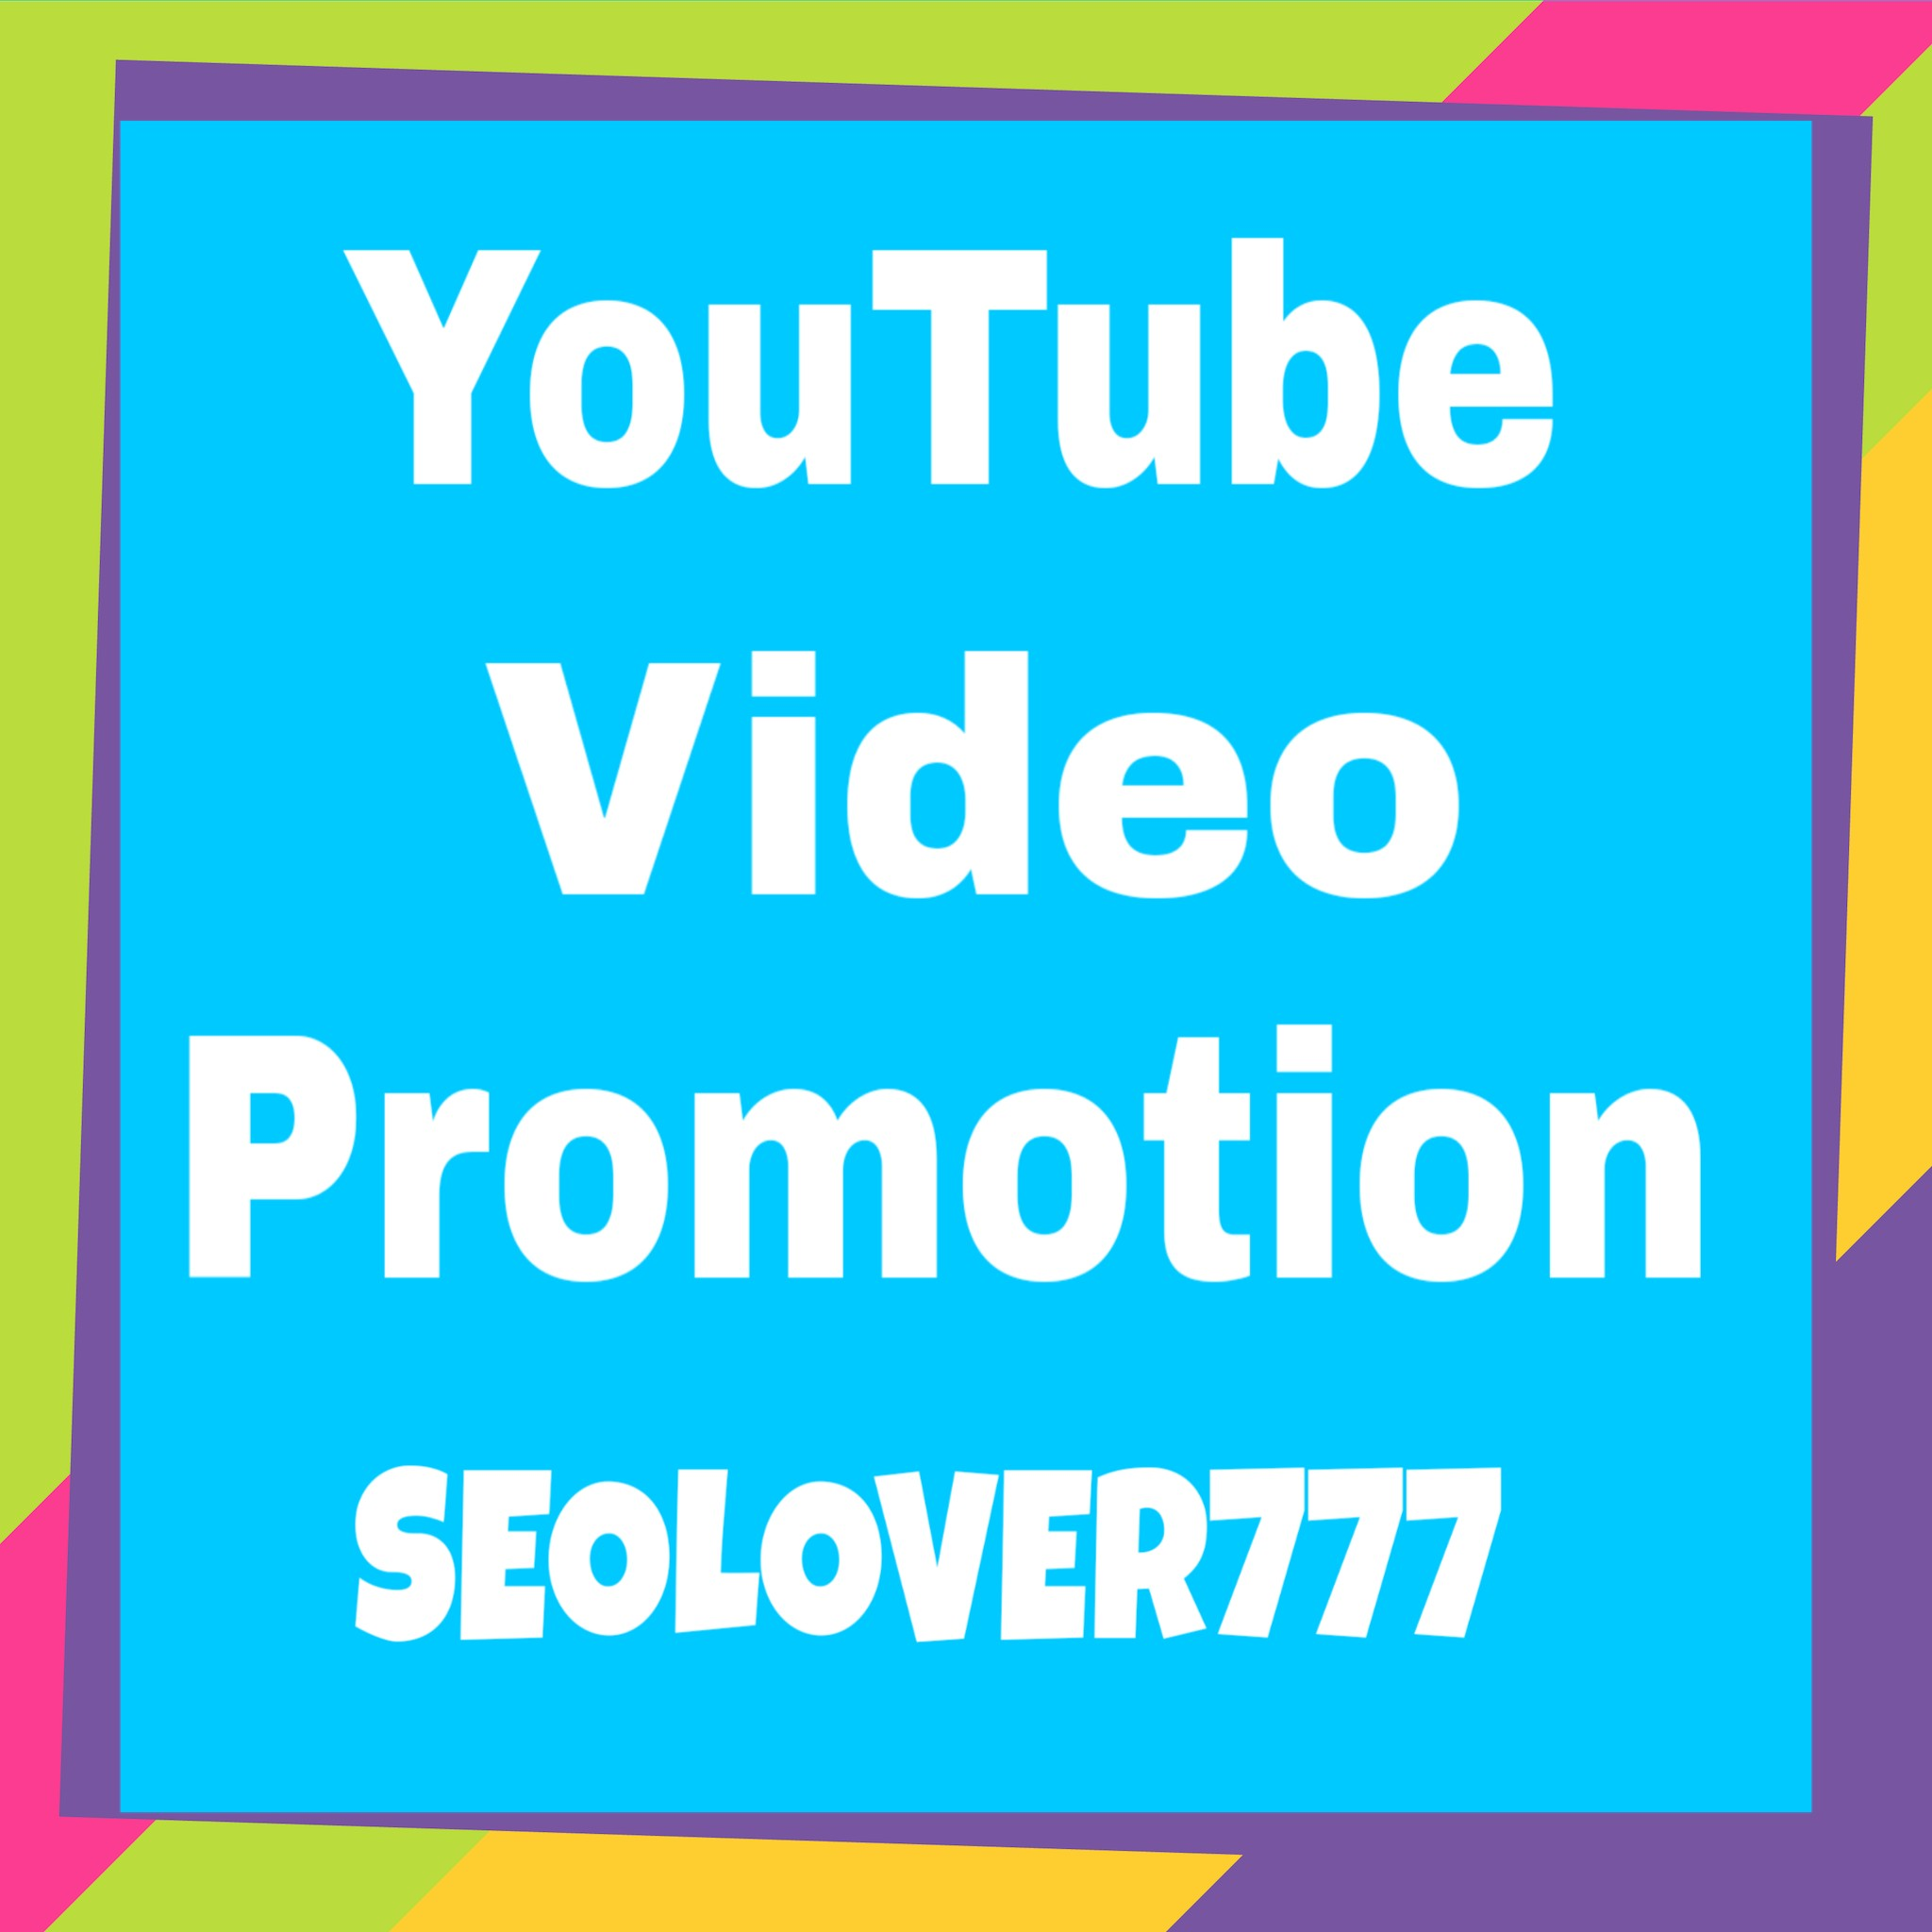 Organic YouTube Video Promotion and Marketing only